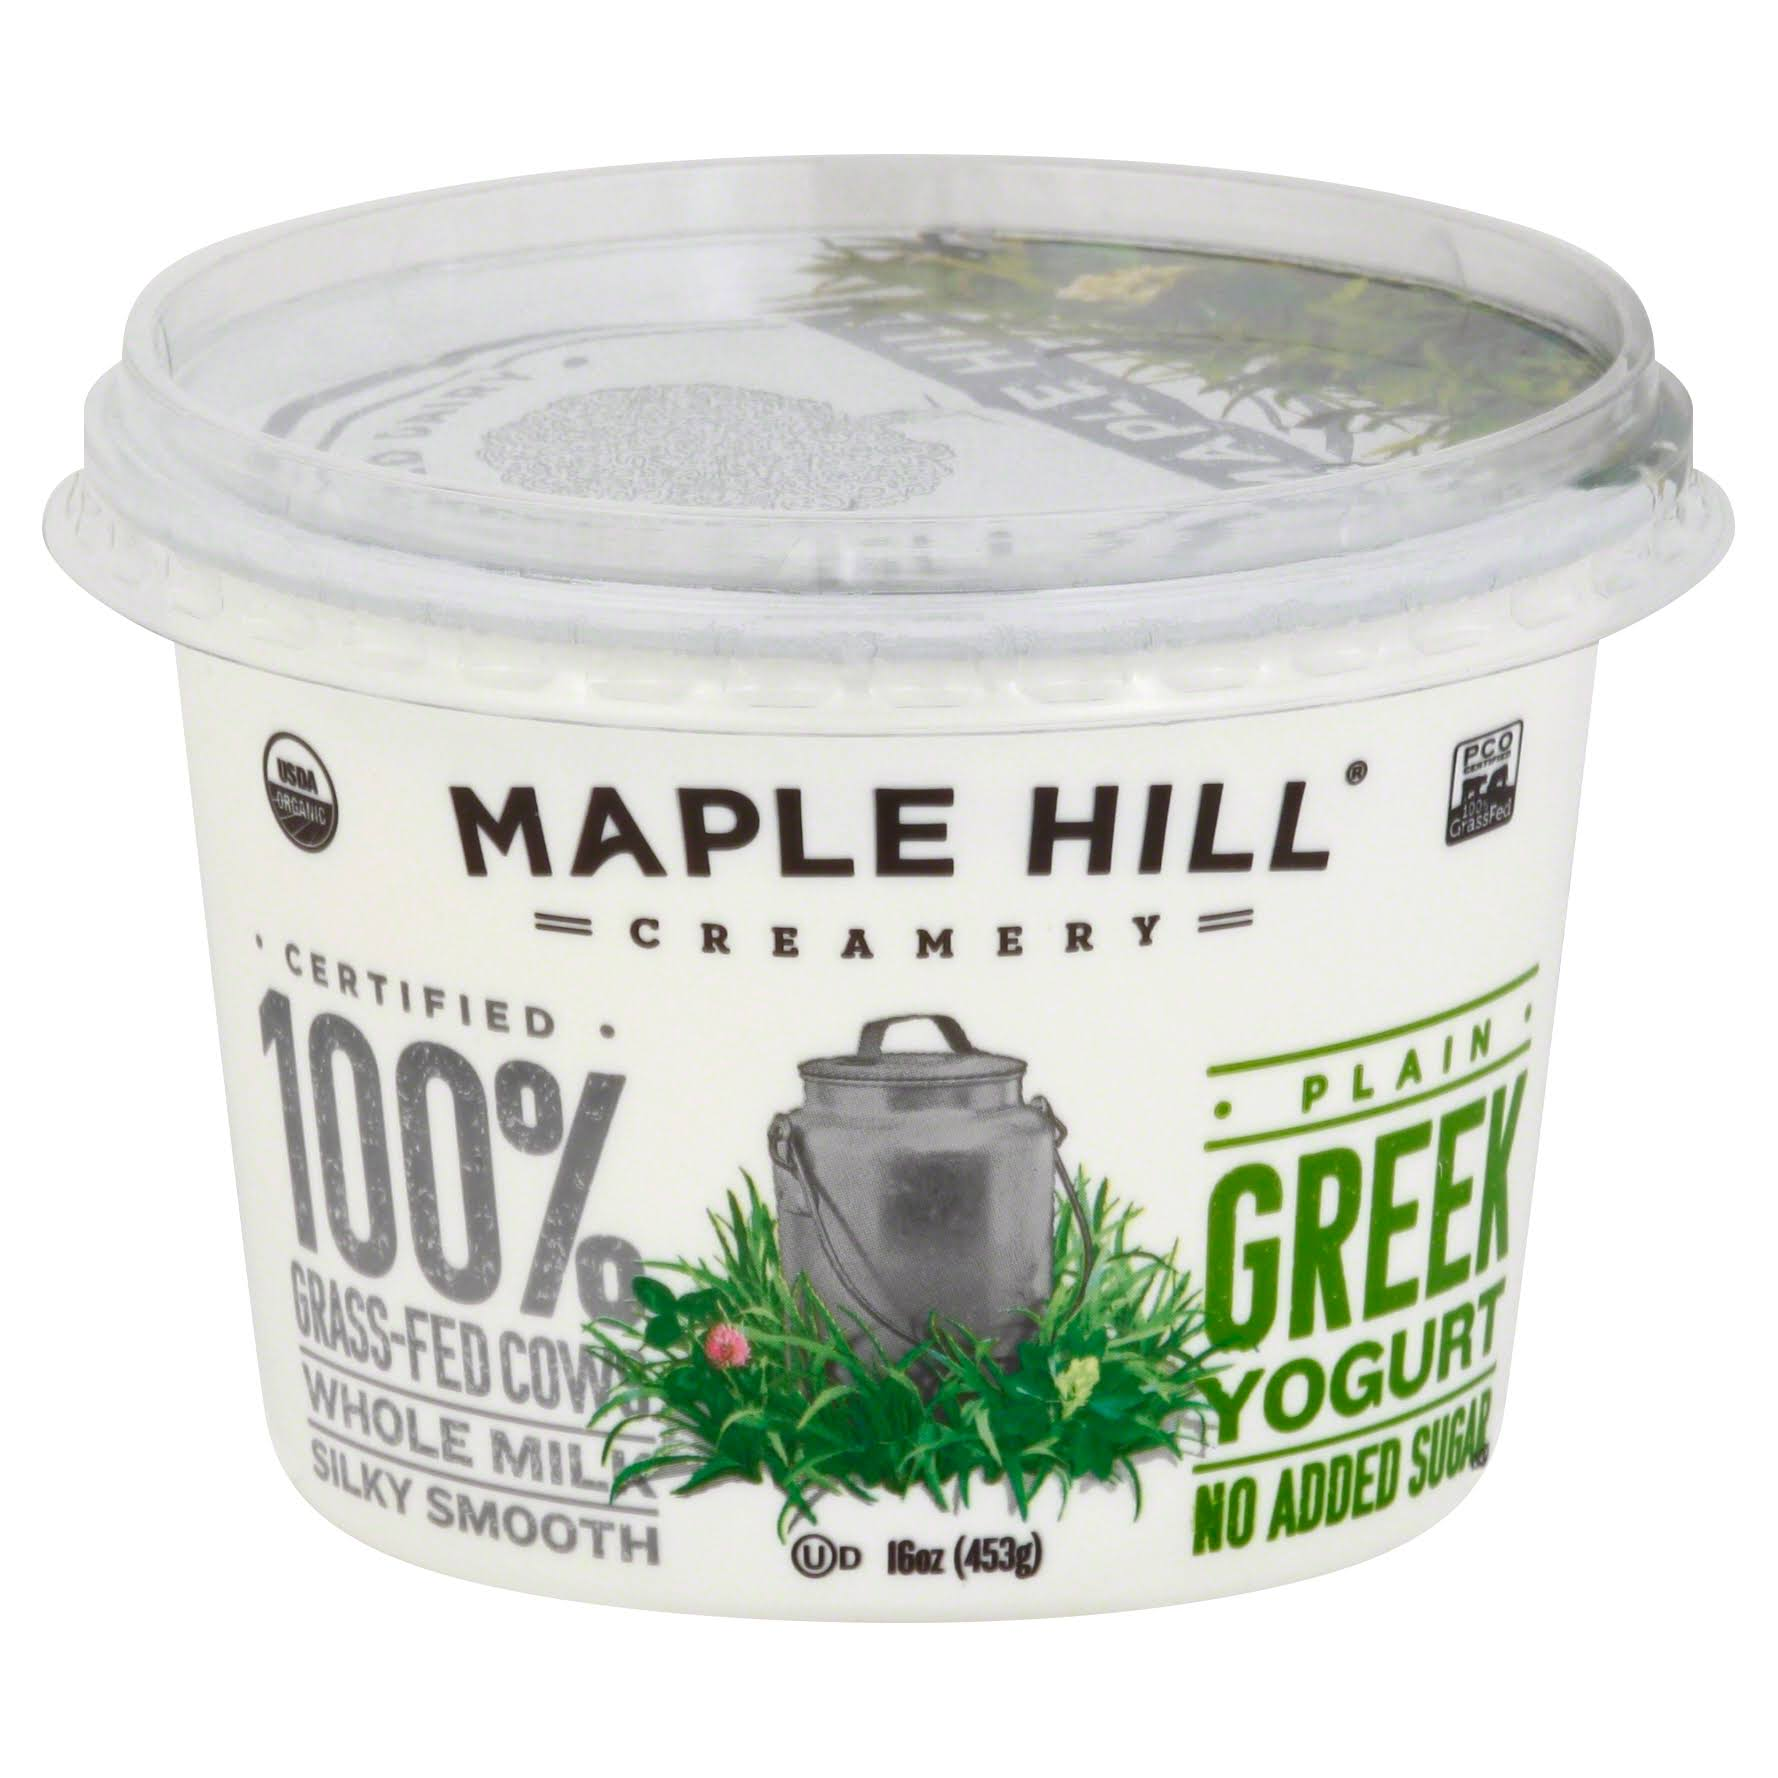 Maple Hill Creamery Grass Fed Organic Greek Yogurt - Plain, 16oz